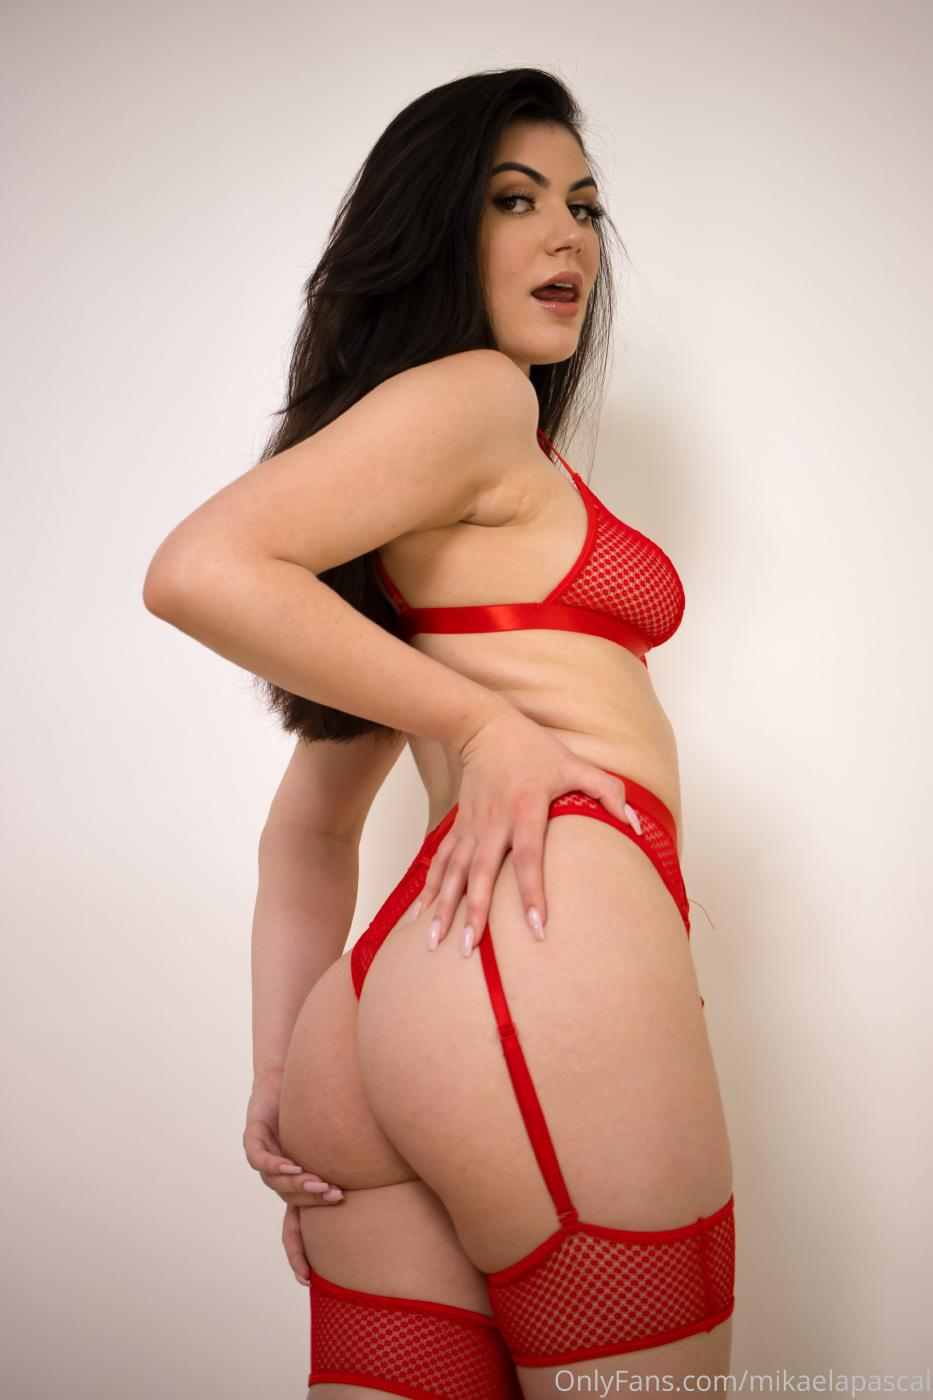 Mikaela Pascal Red Lingerie Onlyfans Set Leaked 0001